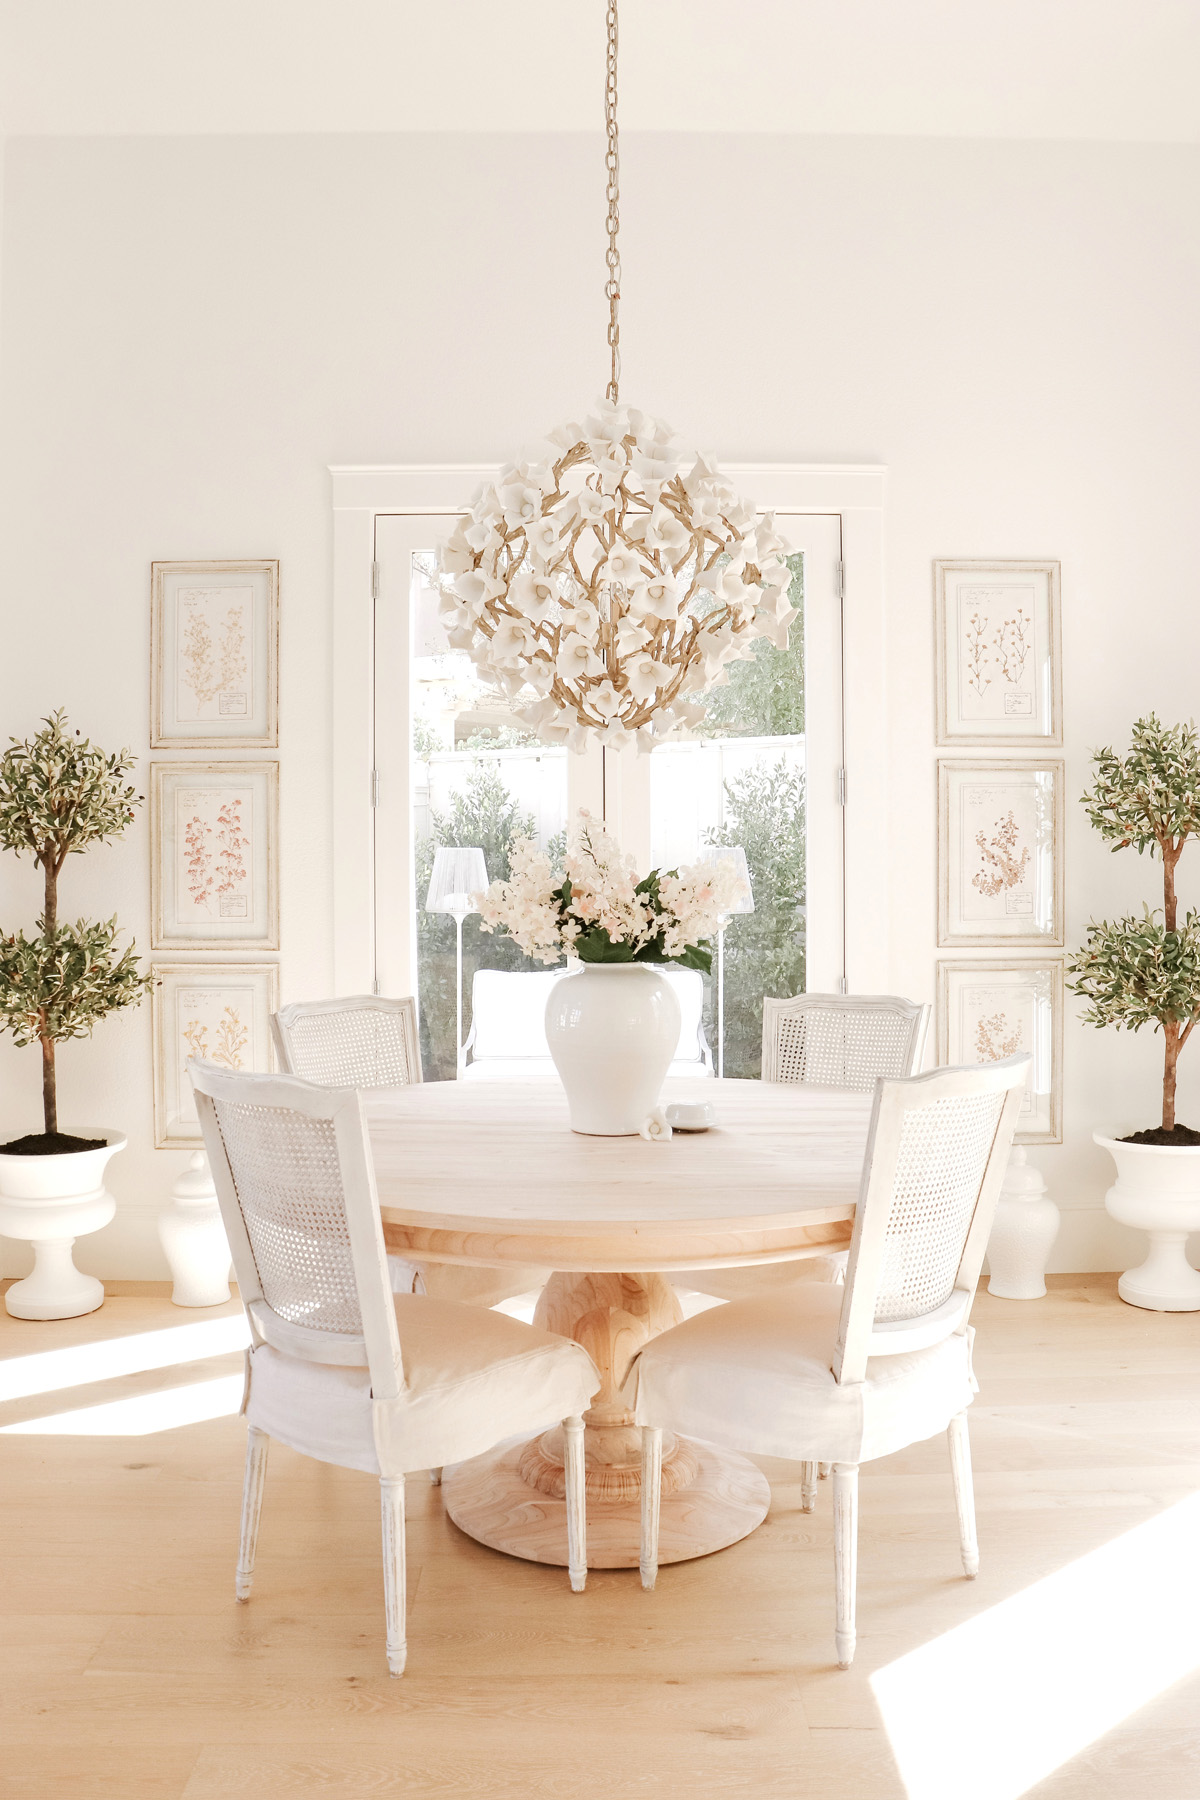 French-Inspired Pedestal Dining Table | Obsessed with this dining room look! | Kristy Wicks